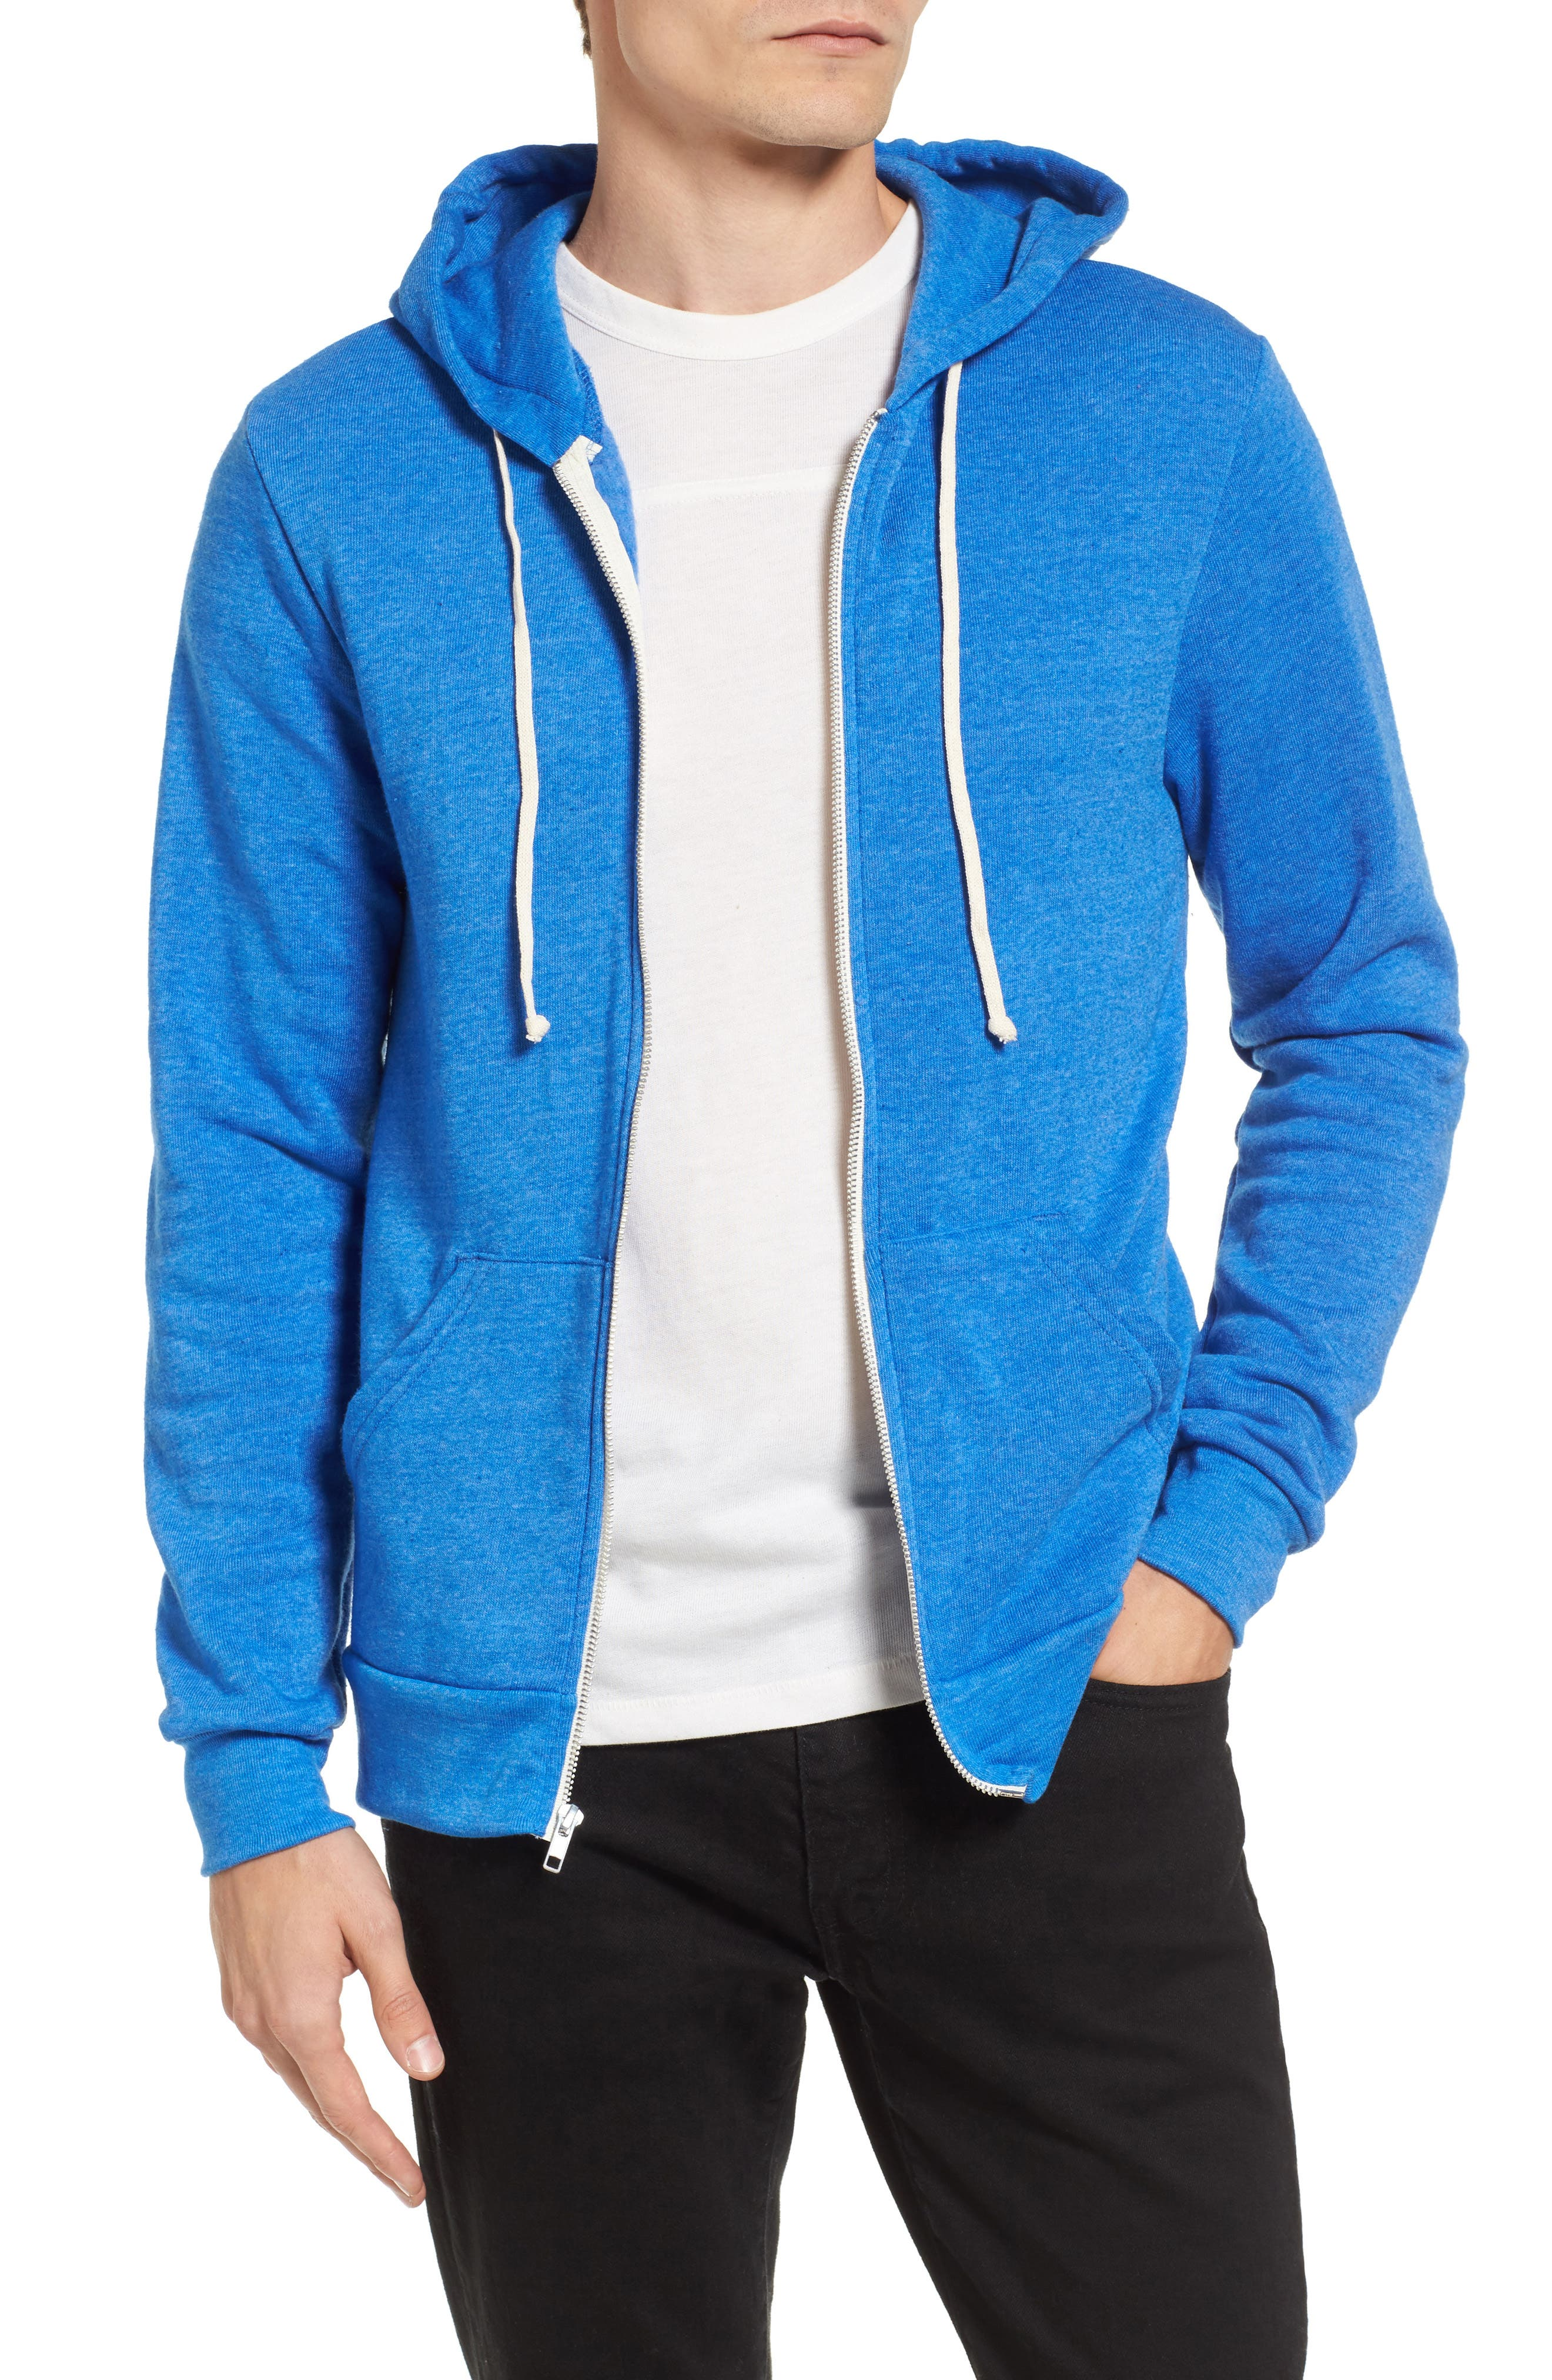 'Rocky' Trim Fit Hoodie,                         Main,                         color, Eco True Pacific Blue